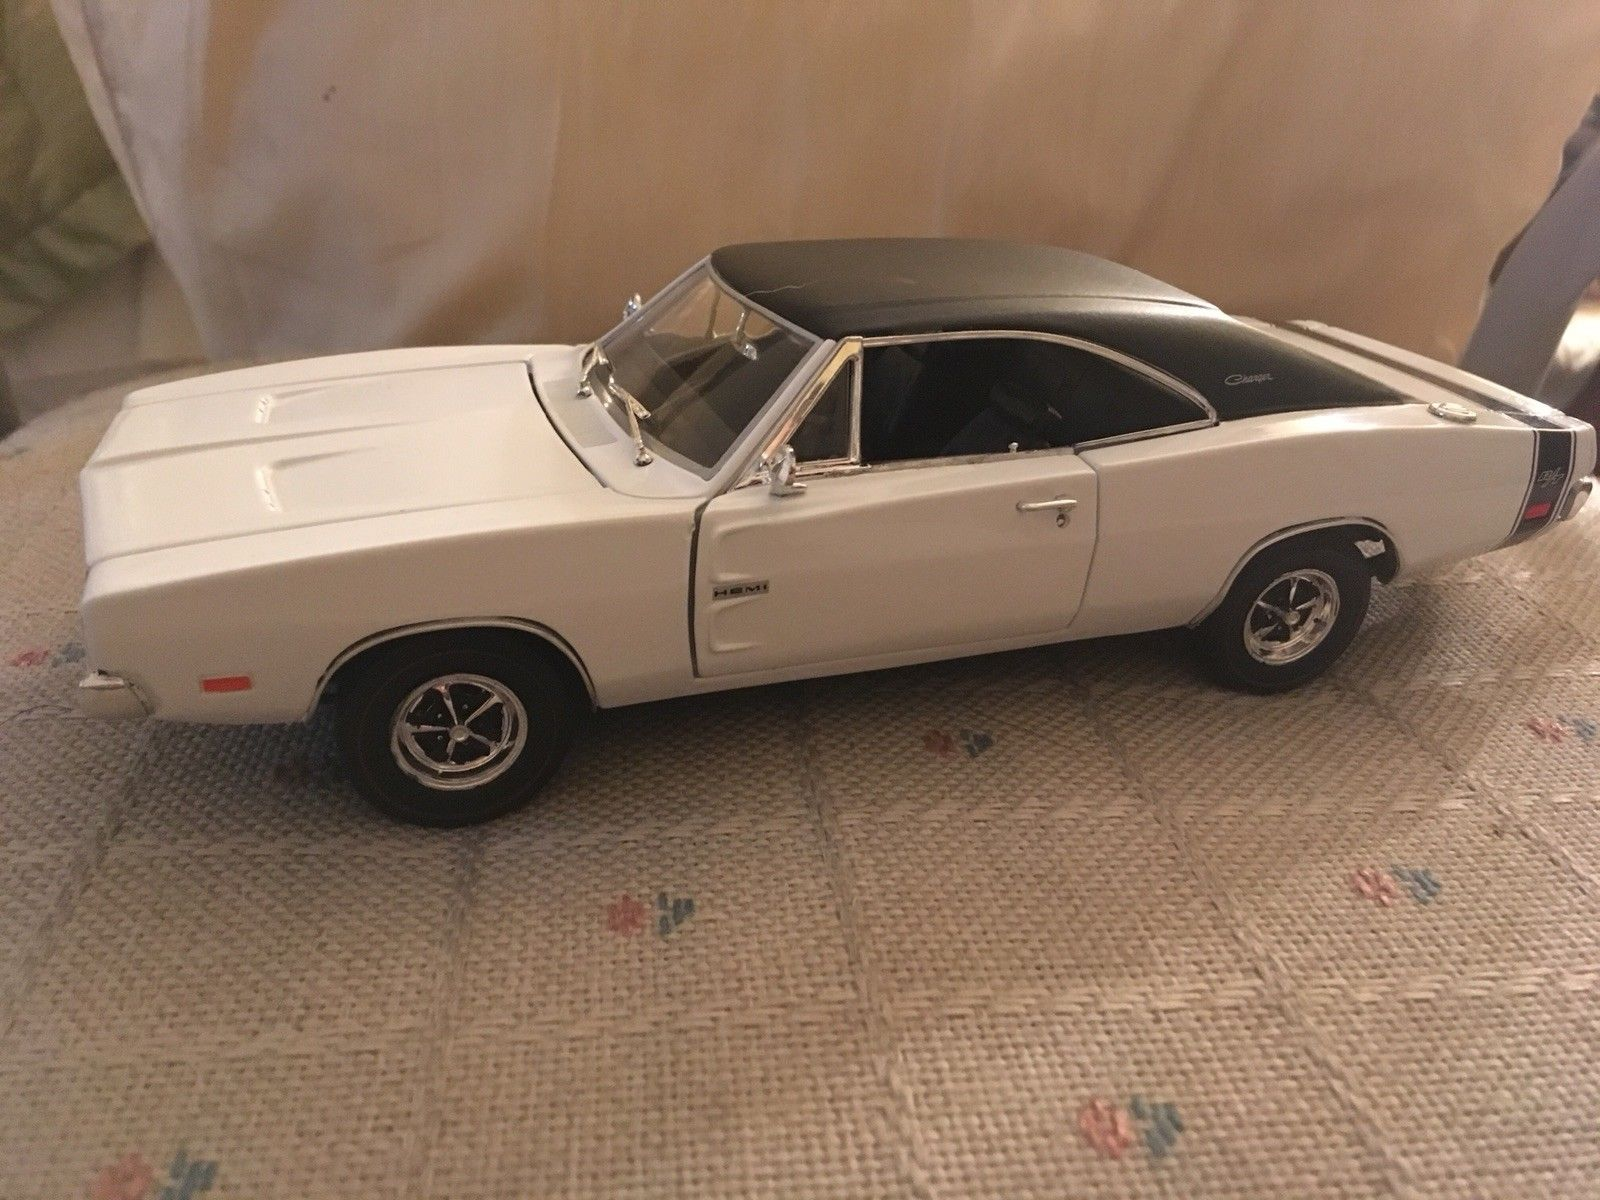 1 24 Built Testors Lincoln Mint 1969 Dodge Charger Rt White Black Model 2017 2018 Is In Stock And For Sale 24carshop Com